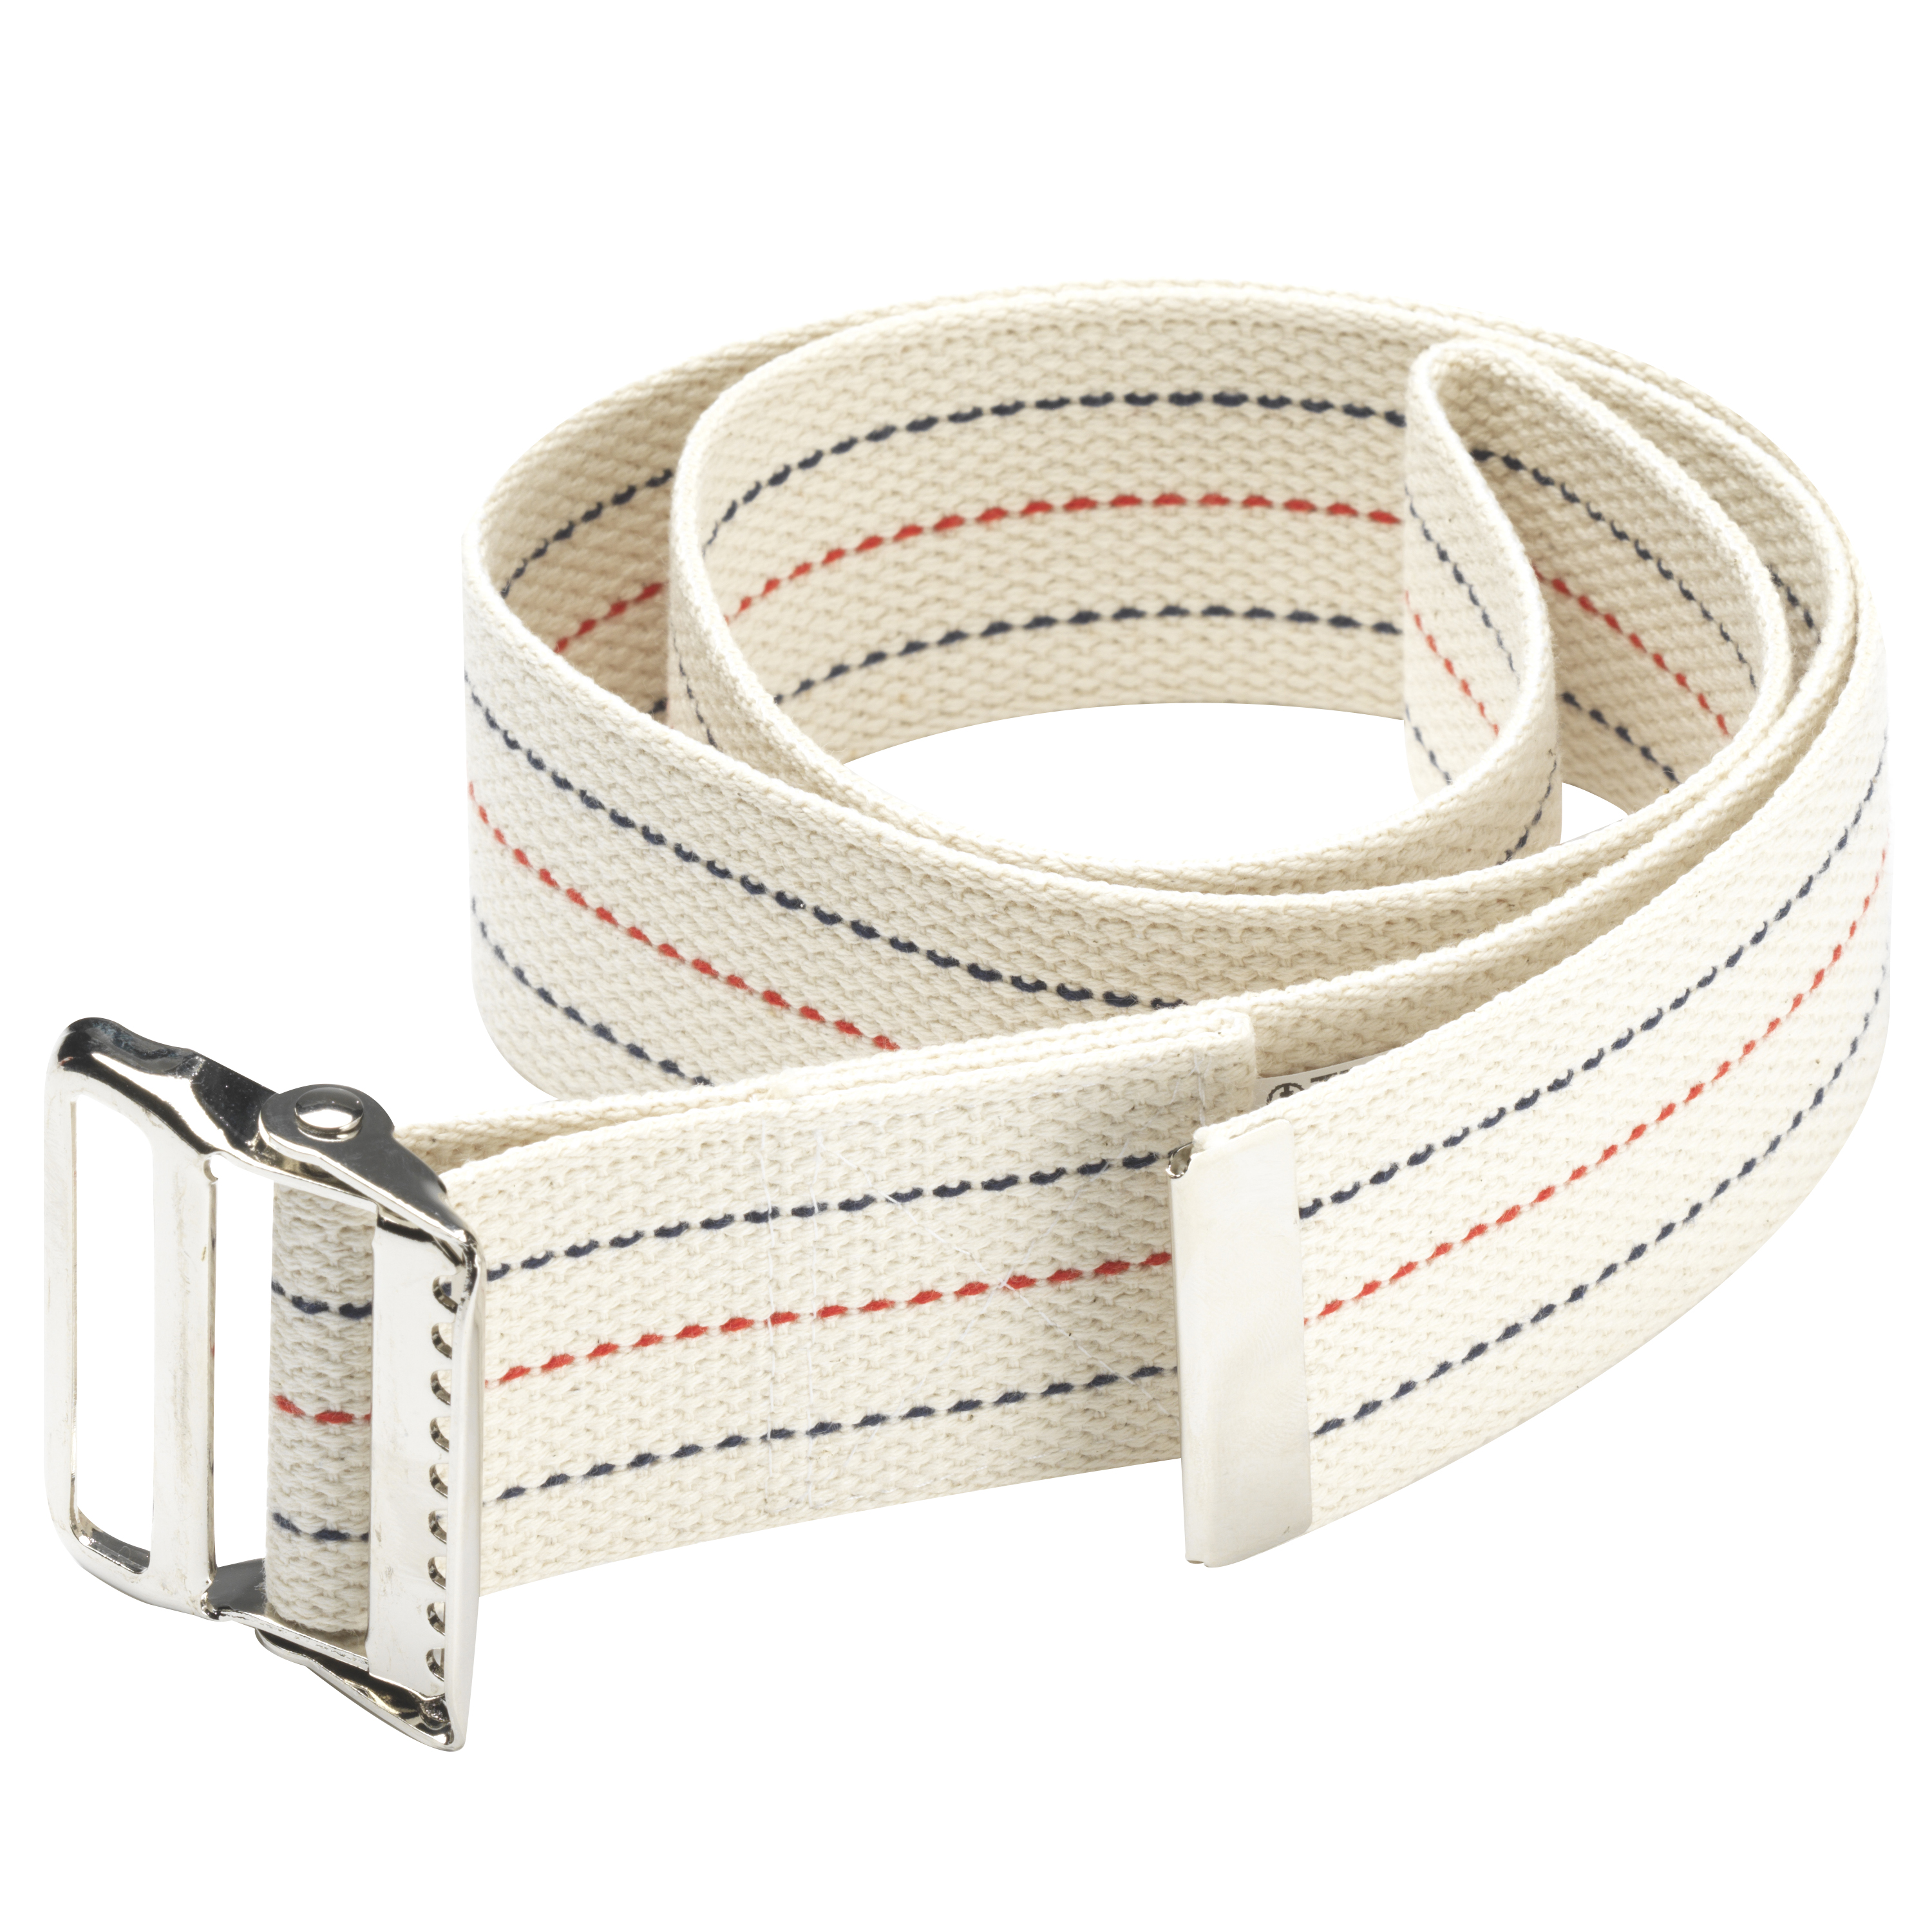 "OTC Gait Transfer Belt, White, 48"" length"